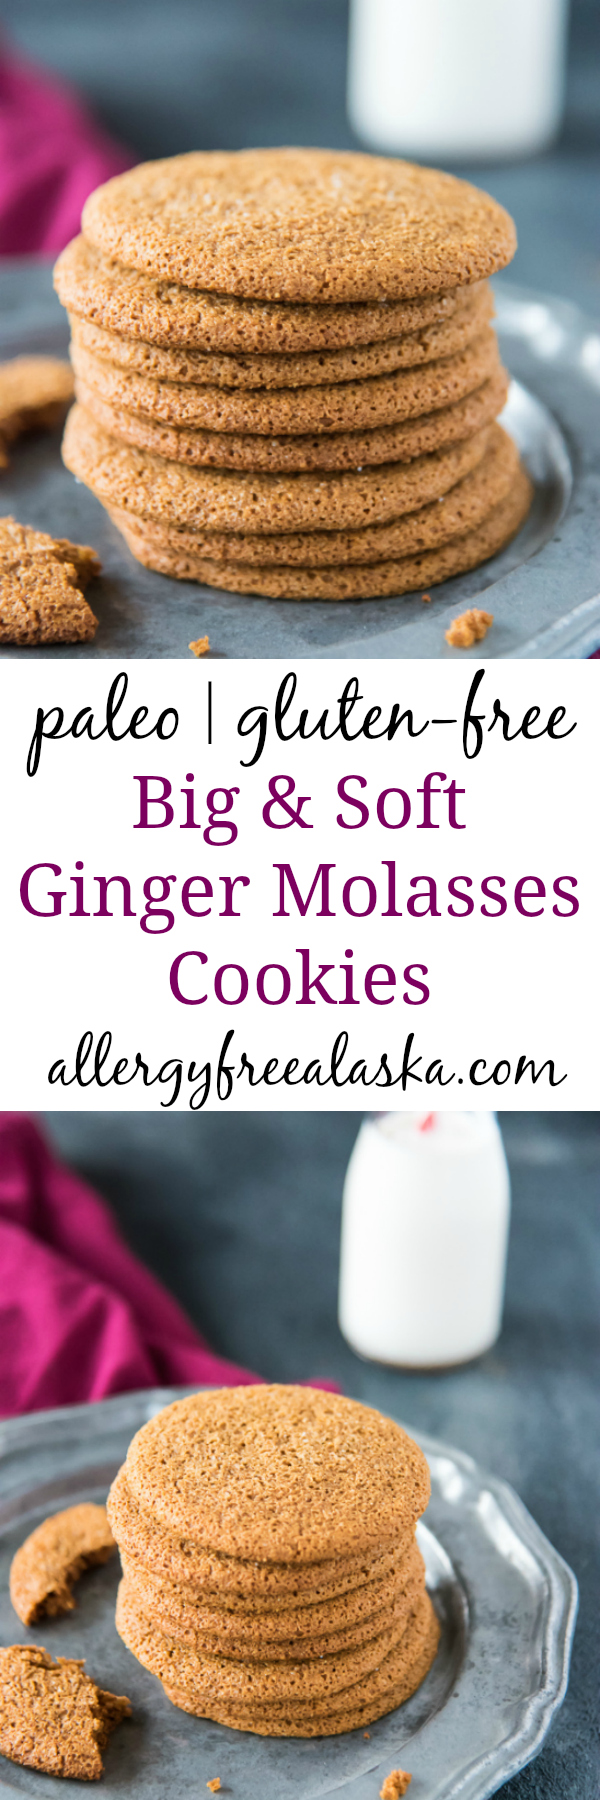 pinterest collage paleo ginger molasses cookies